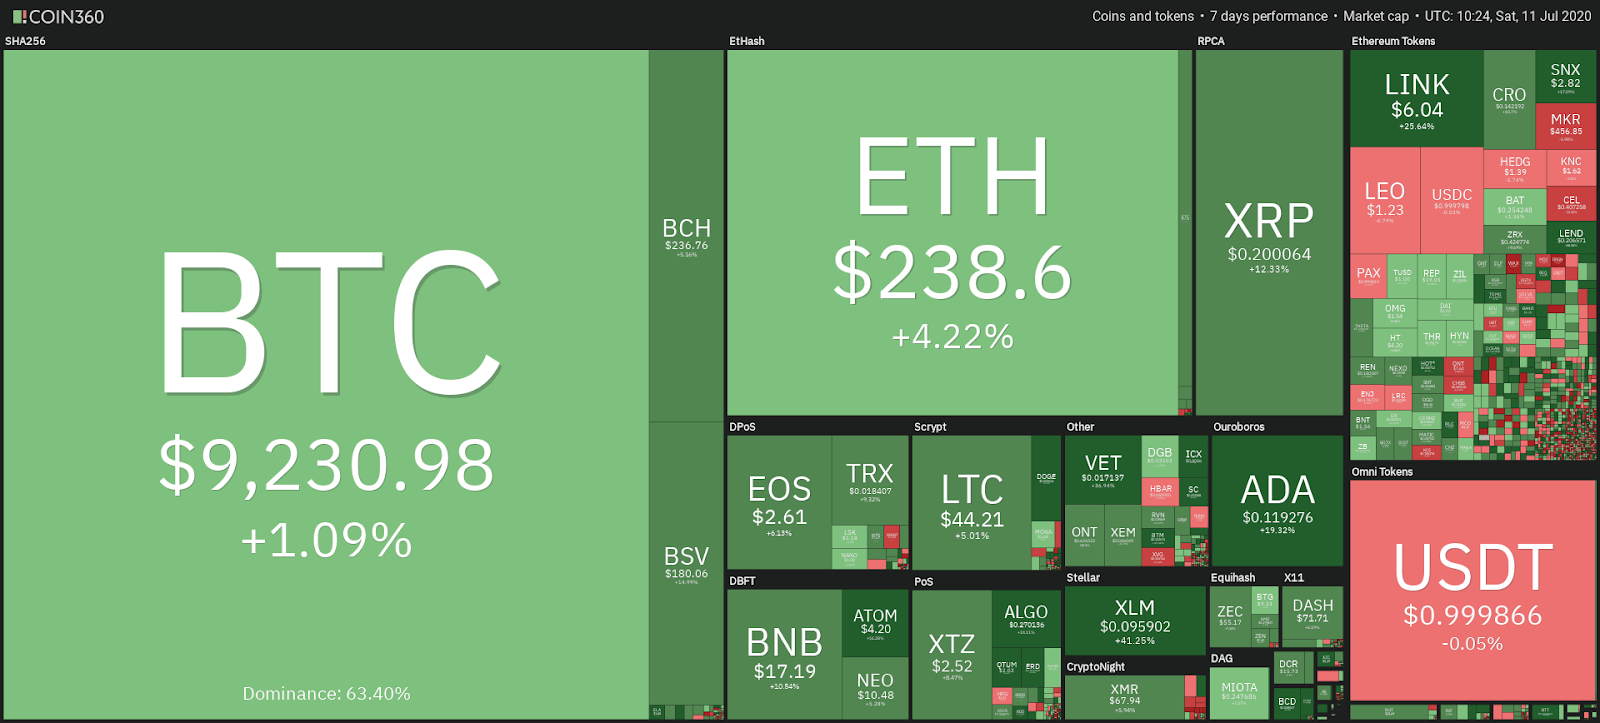 Market performance of cryptocurrencies in the past 7 days